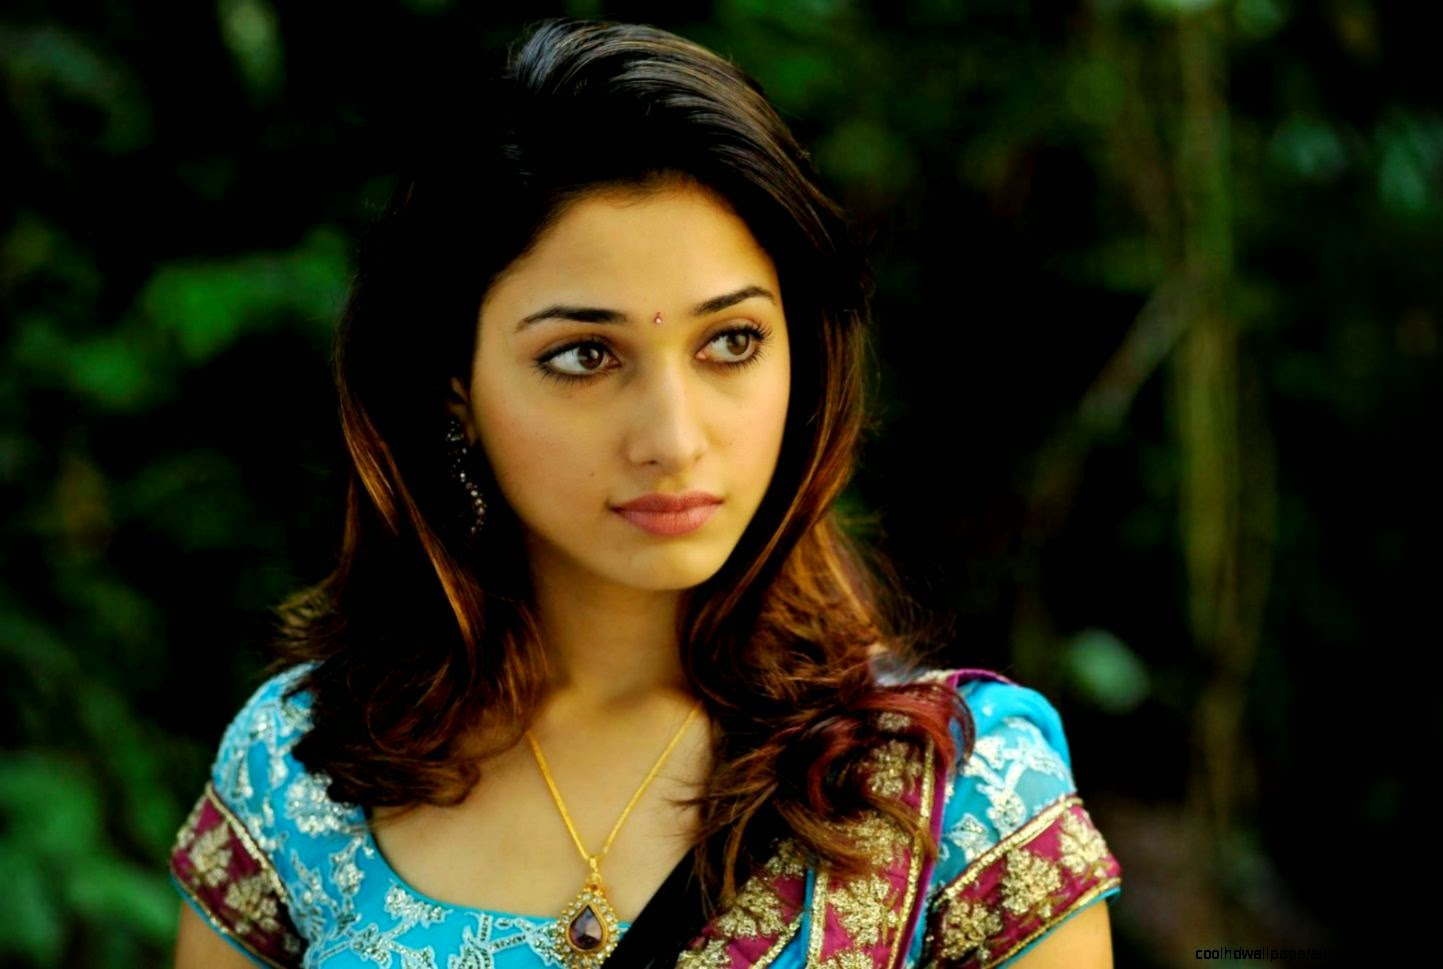 Tamanna In Tadakha Halfsaree: Tamanna In Saree Hd Wallpaper